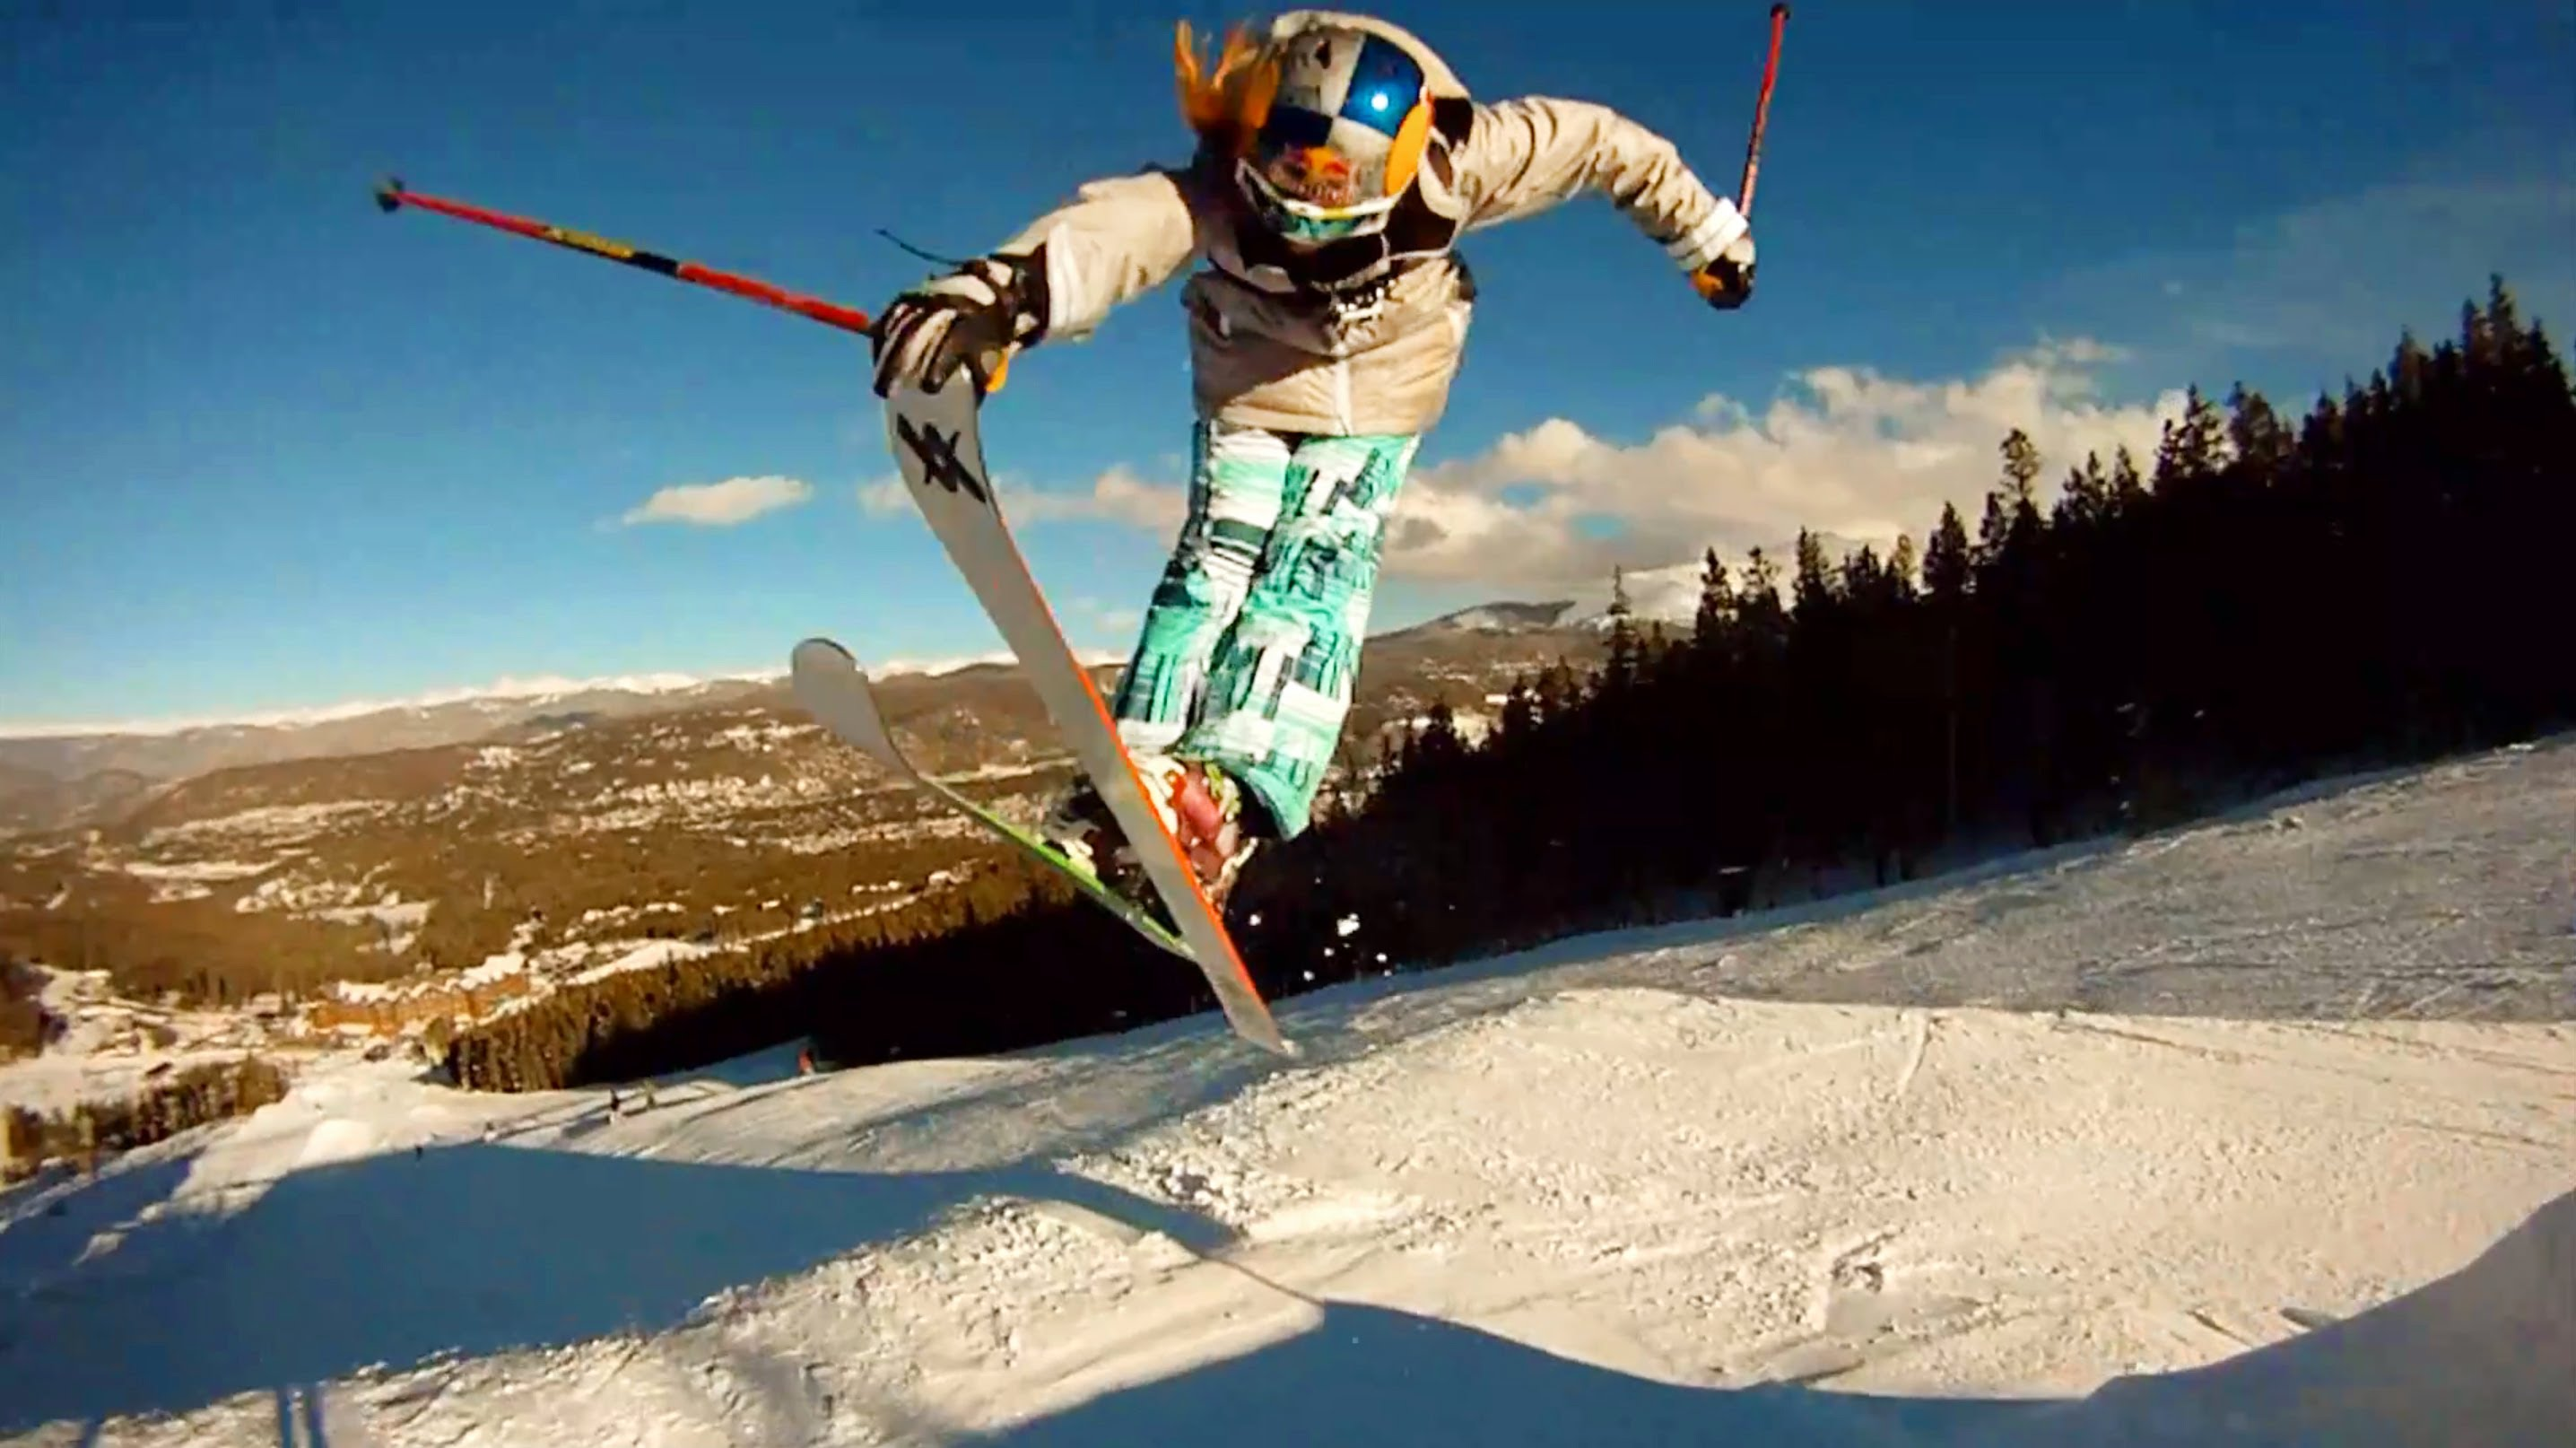 Young trick skier photo